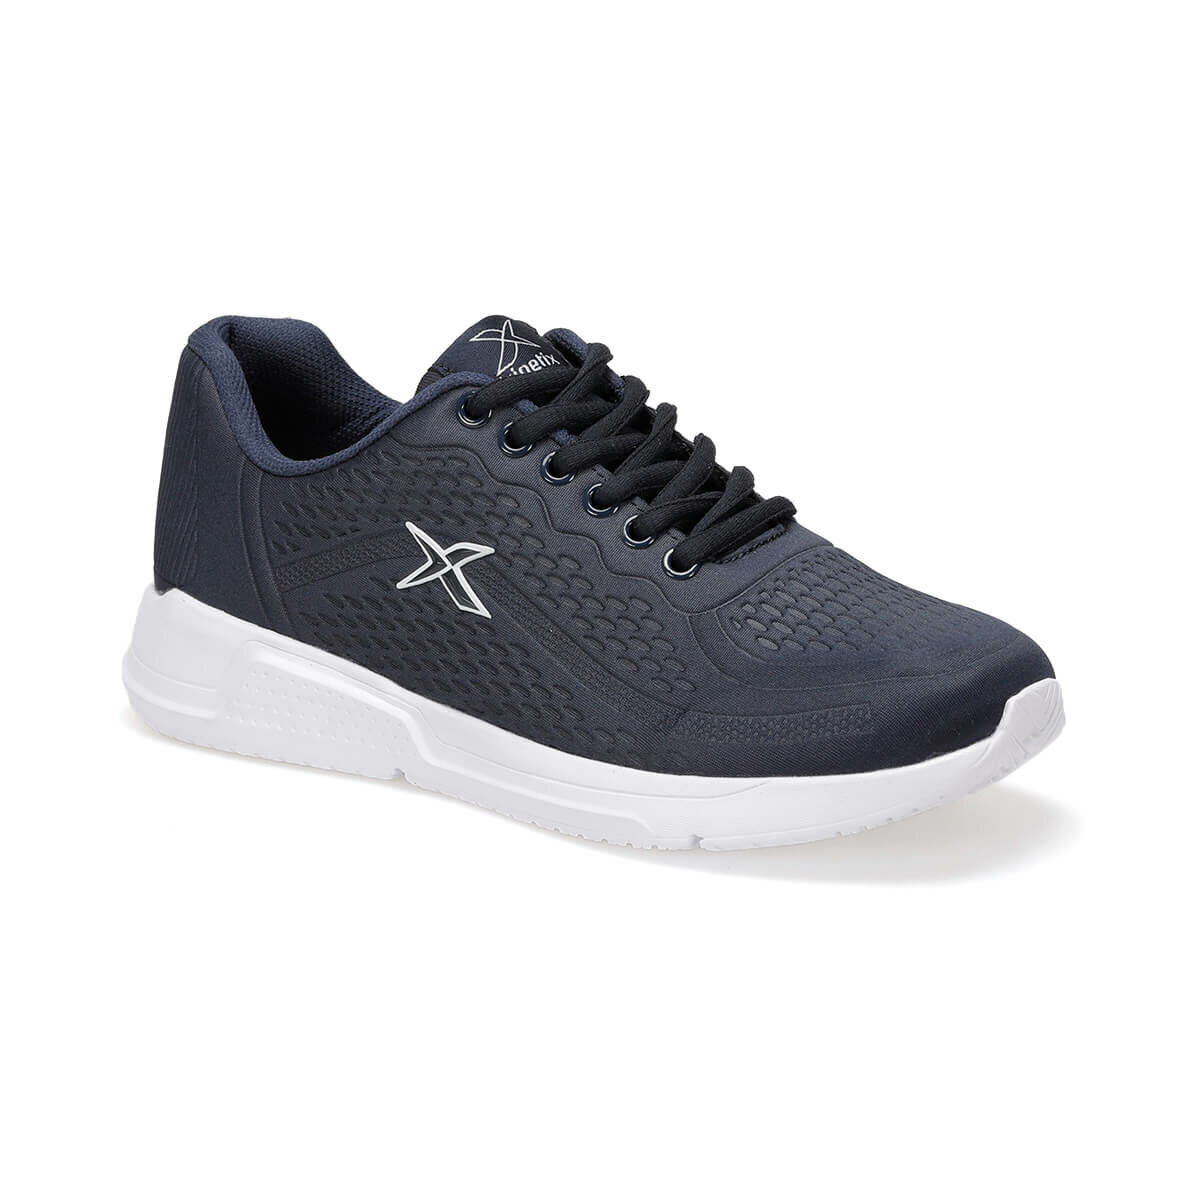 FLO NAVEN TX M 9PR Navy Blue Men 'S Sneaker Shoes KINETIX